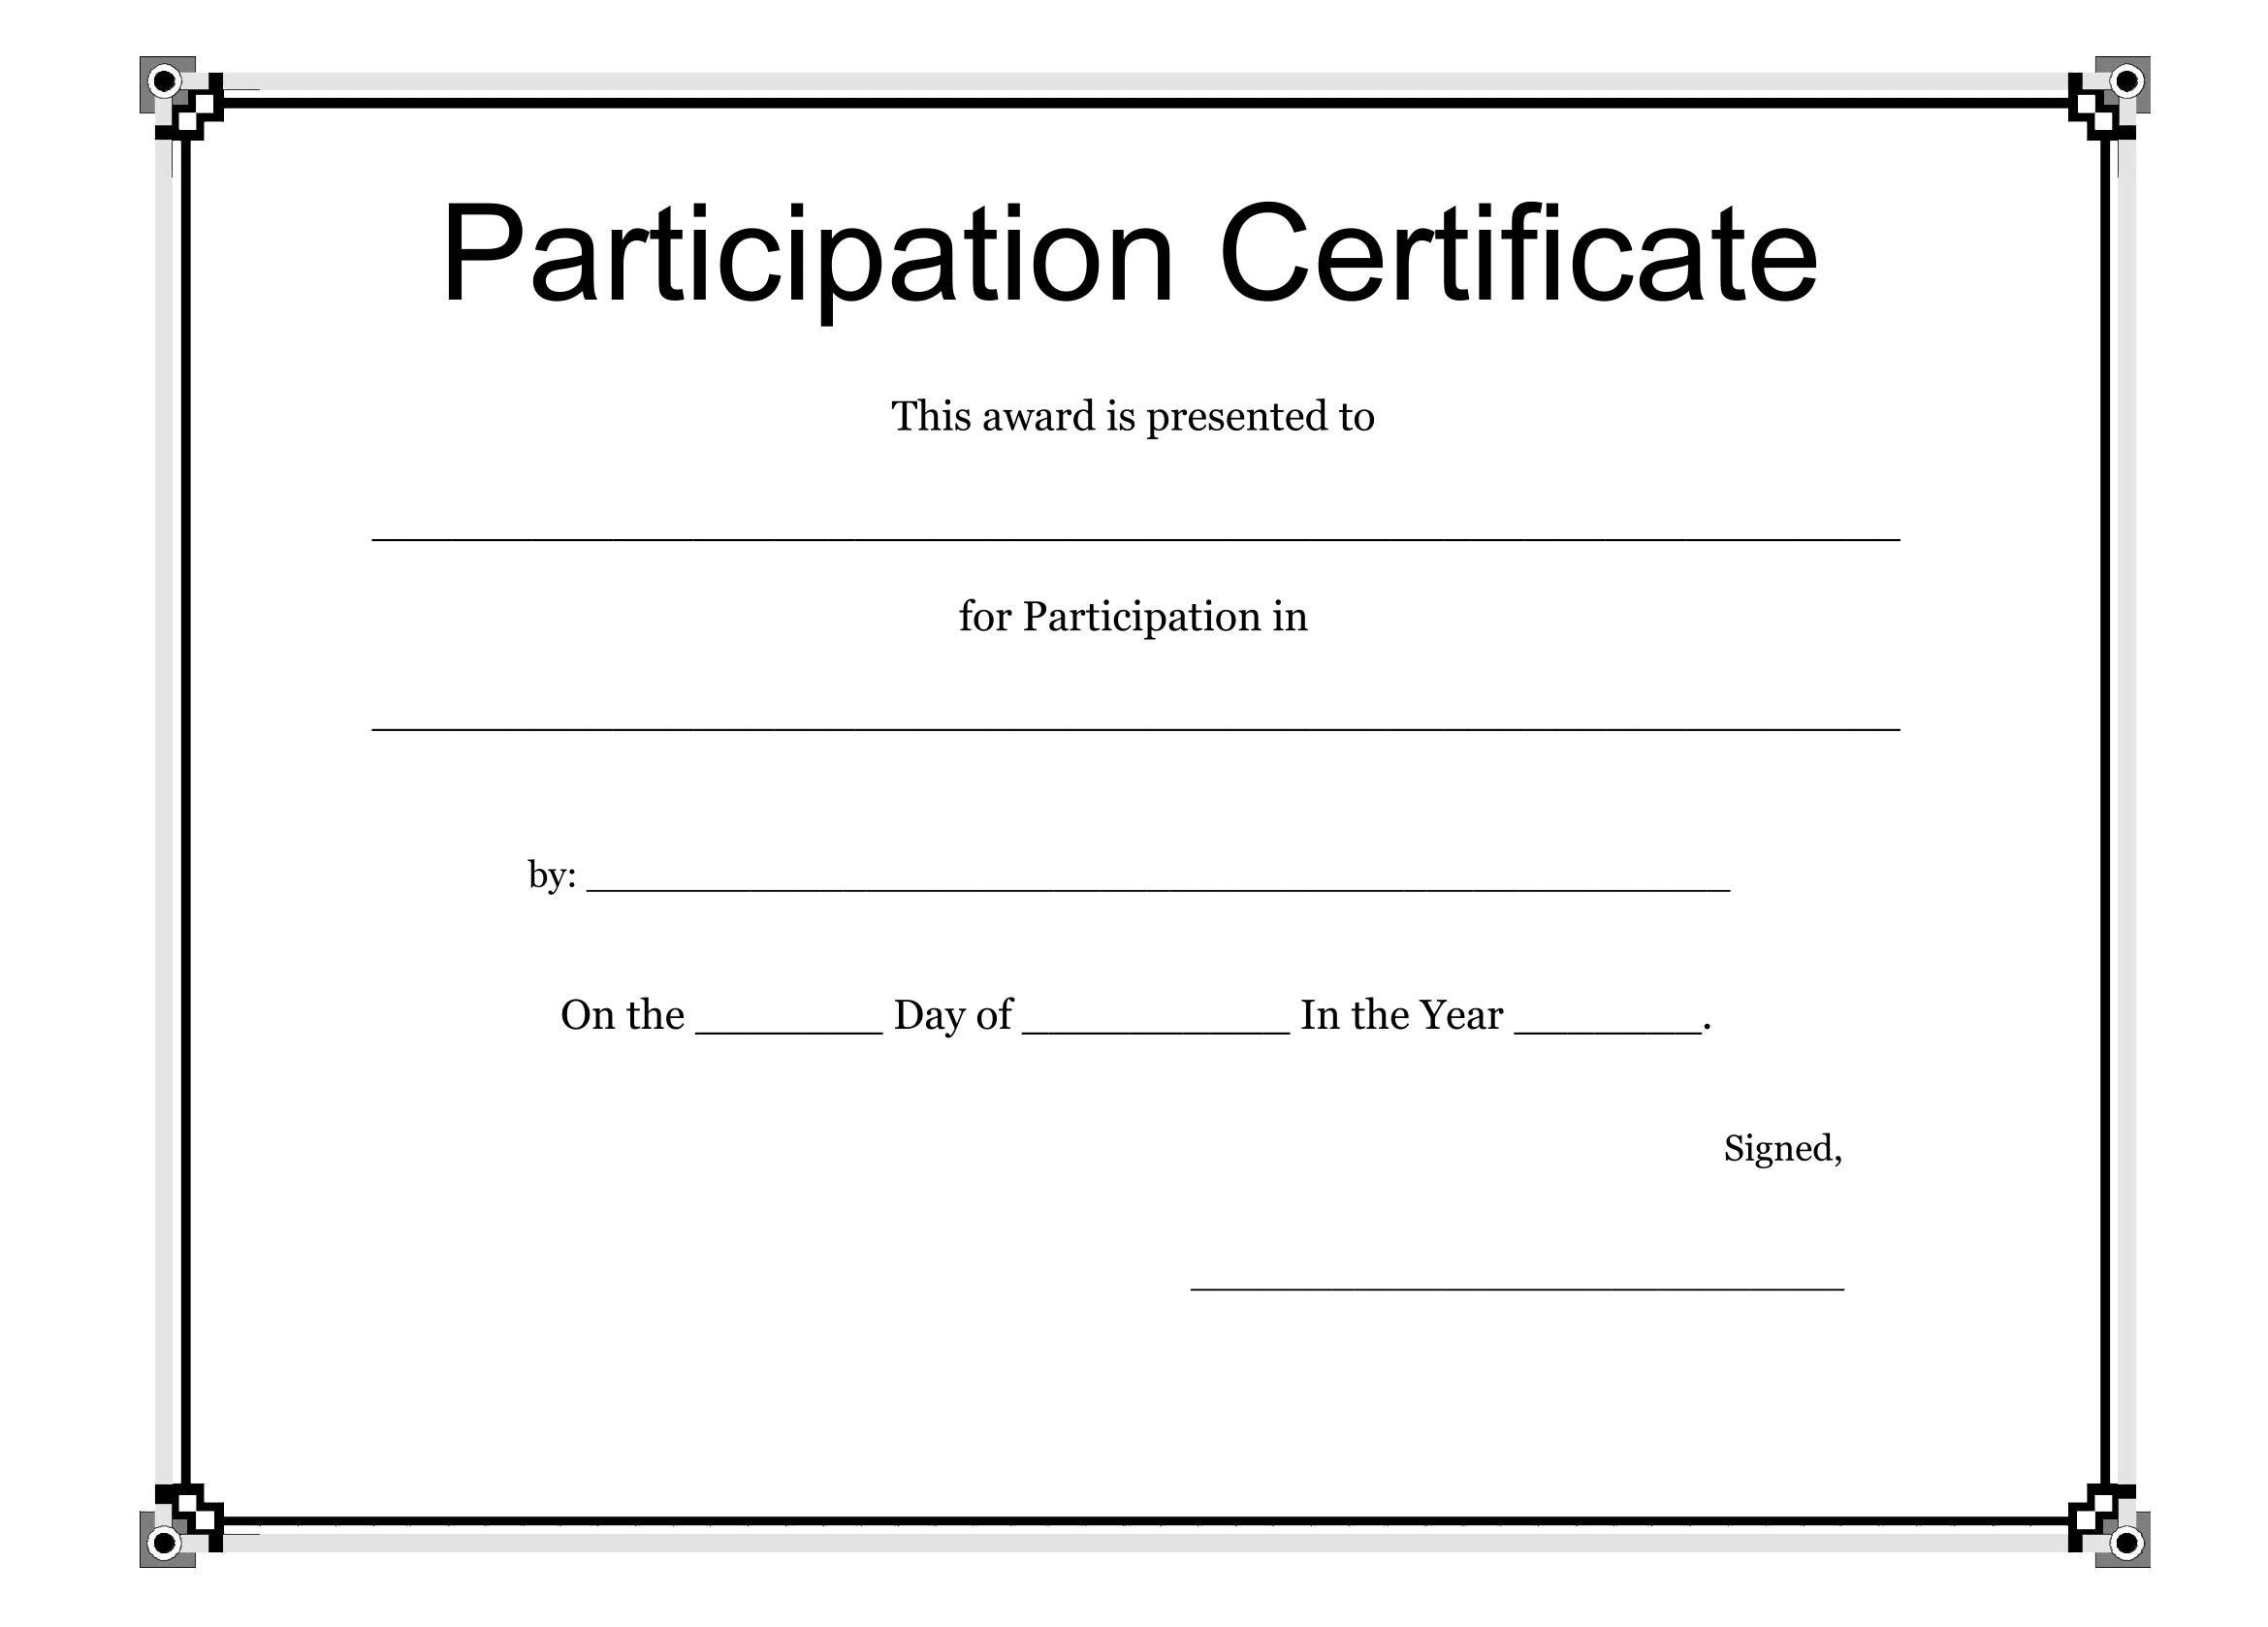 Participation certificate template free download for Certificate template download